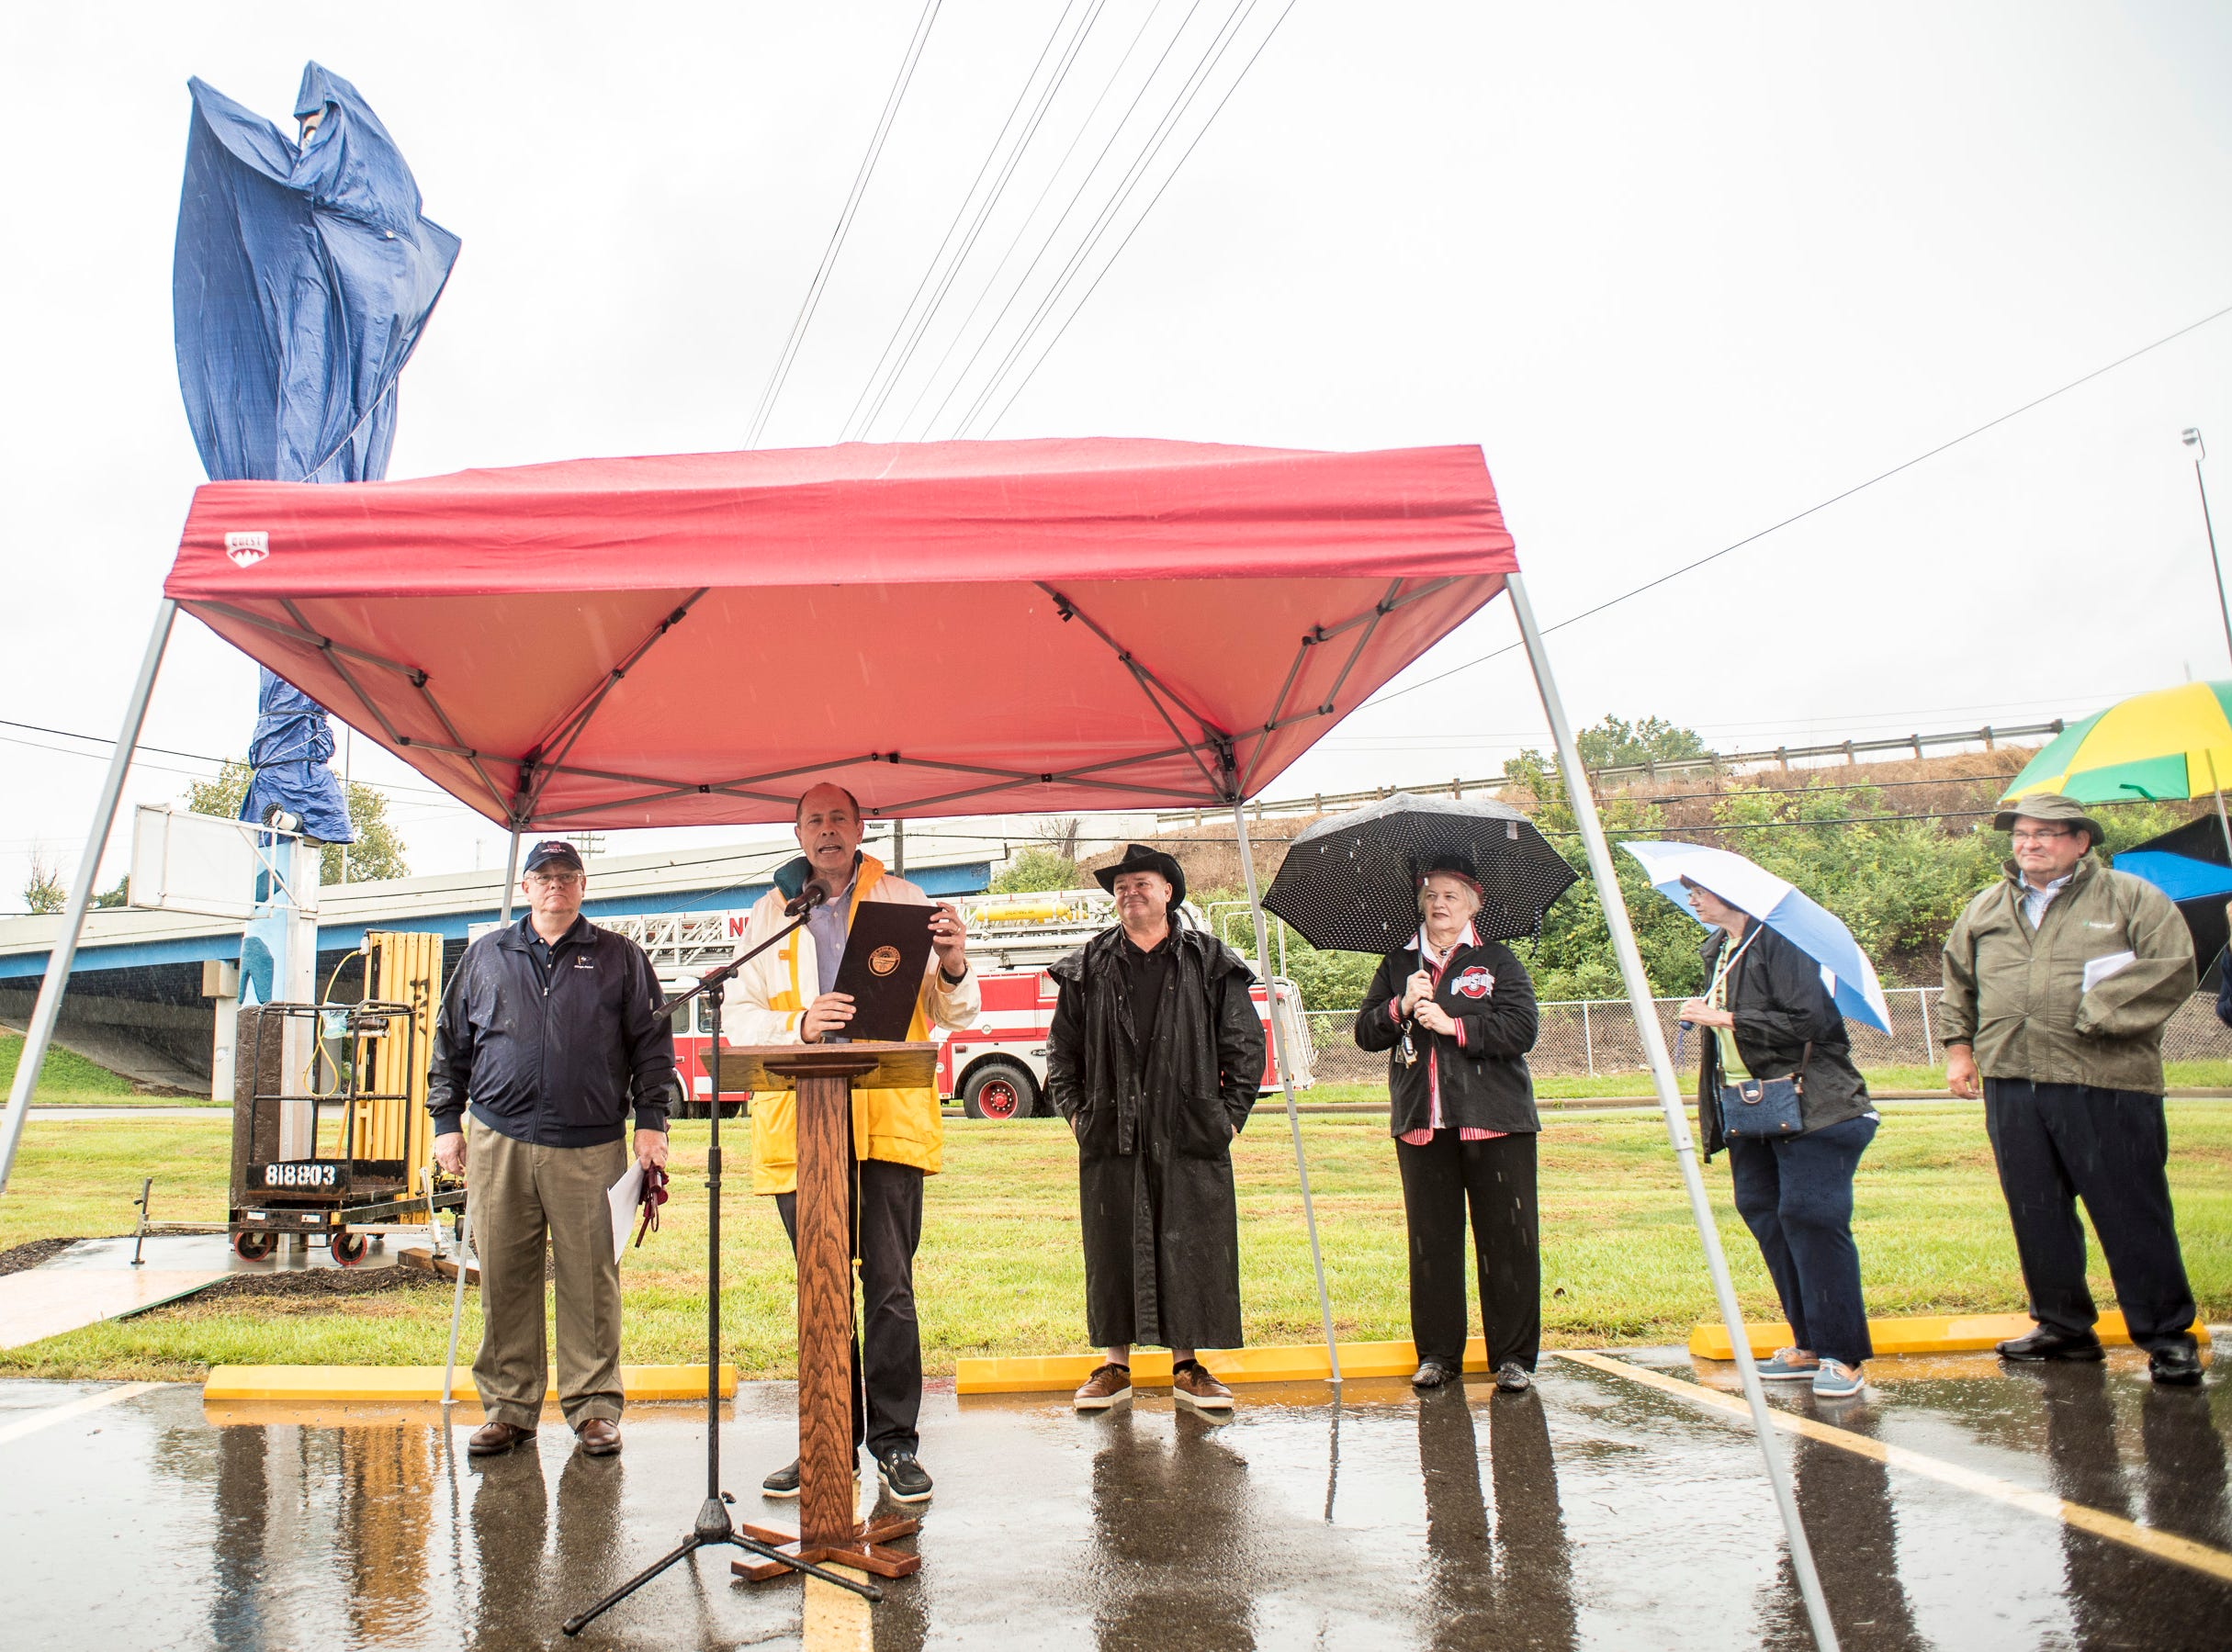 State senator Jay Hottinger reads a proclamation during a ceremony held Saturday to unveil the newly restored totem pole placed near Truck One in Newark, Ohio.